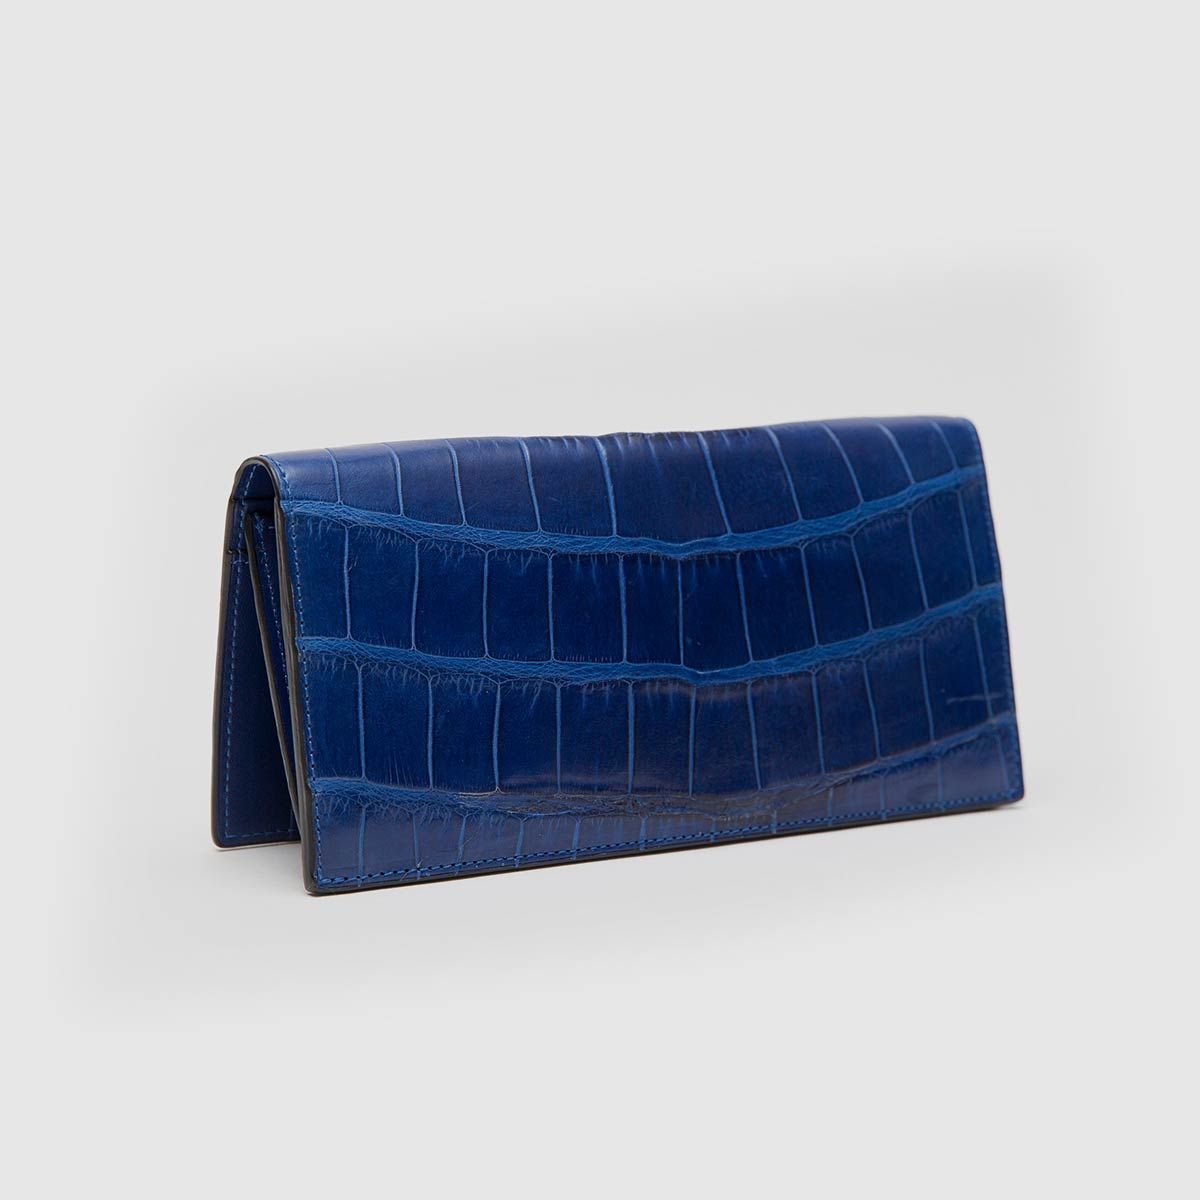 b0fe81fb6e Vertical wallet in genuine blue Crocodile